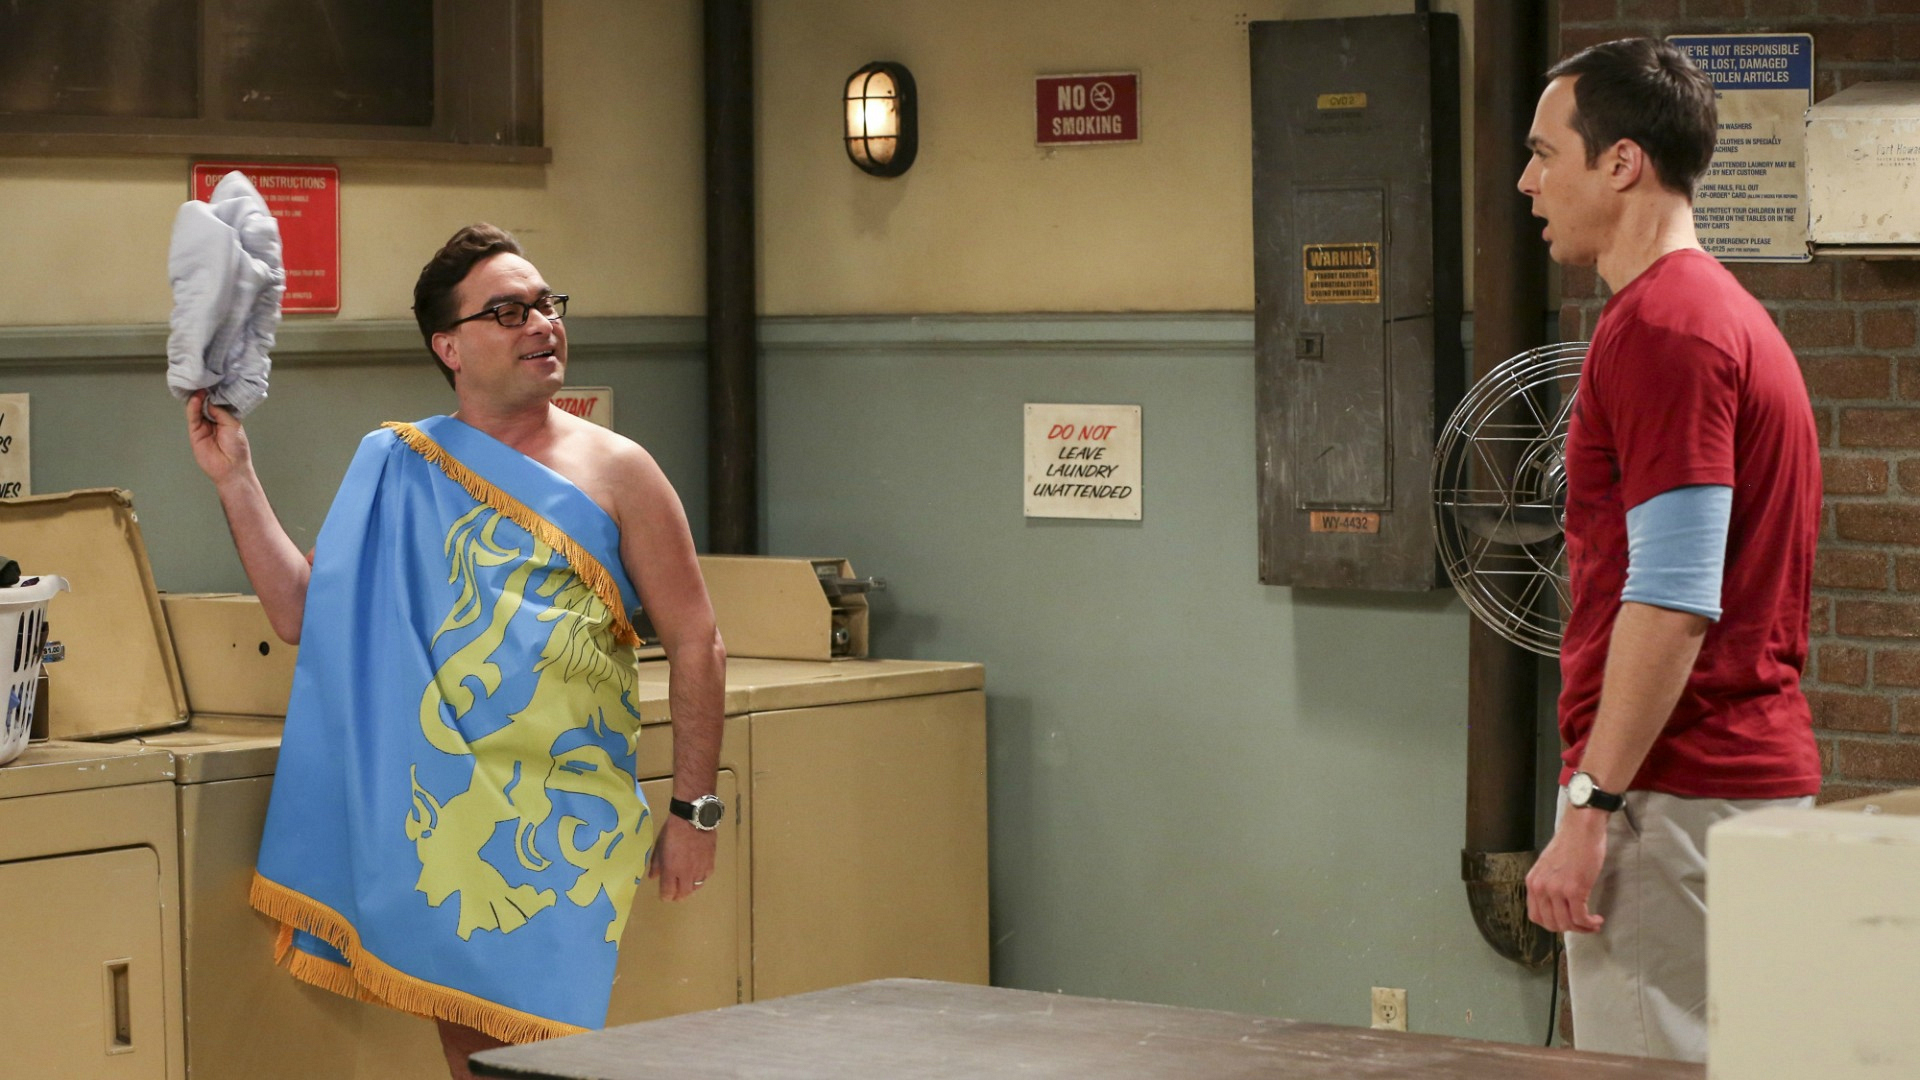 Sheldon is appalled to see Leonard wearing the apartment flag.